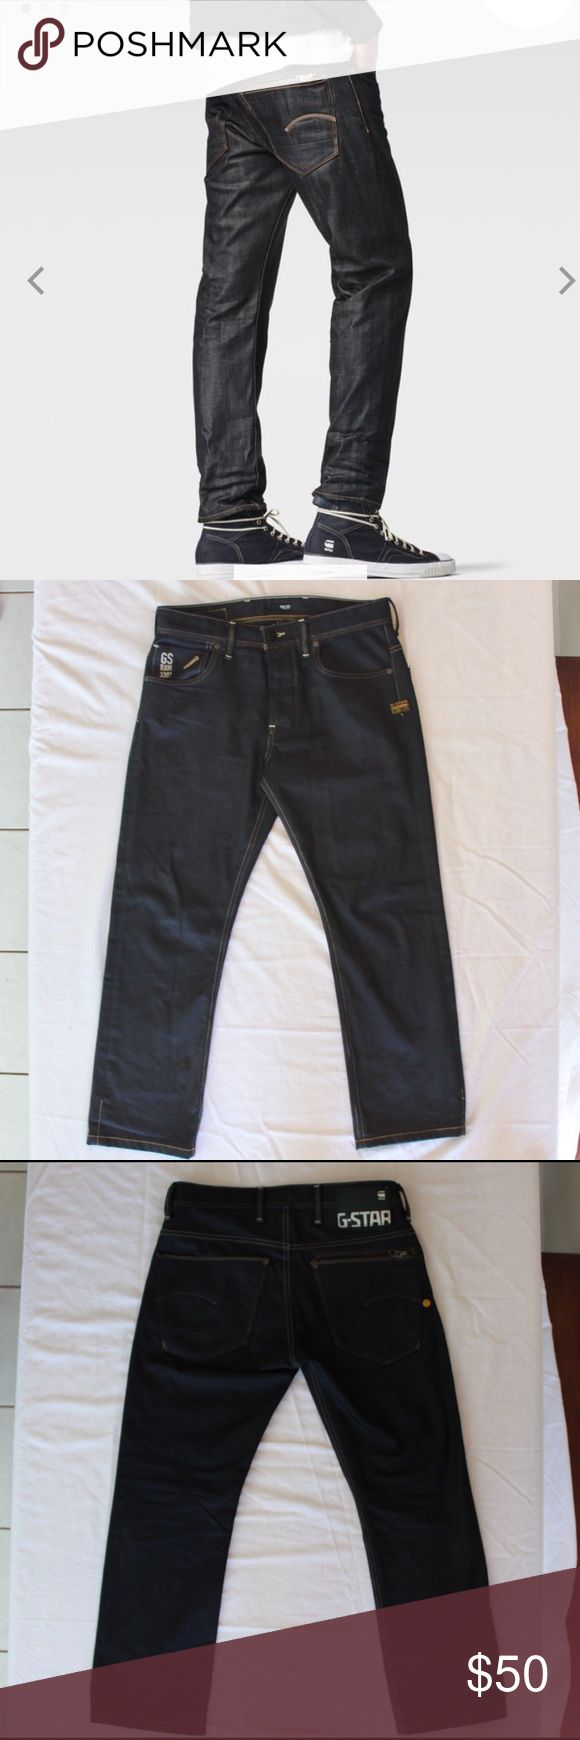 "G-Star Raw Jeans 31/27 G-Star Raw 3301 jeans. Excellent condition. Professionally hemmed to 27"". 10"" front rise. 100% cotton. ATTACC Straight. Concealed zip pocket and flat rivets. No heel fray however even tho they were professionally hemmed a bit of very very minor fray shows through on vertical hem since they are raw denim it is noticeable only because of the teeny tiny spec of color peeping out. It is not something anyone is going to notice except you and that's because I told you. Love…"